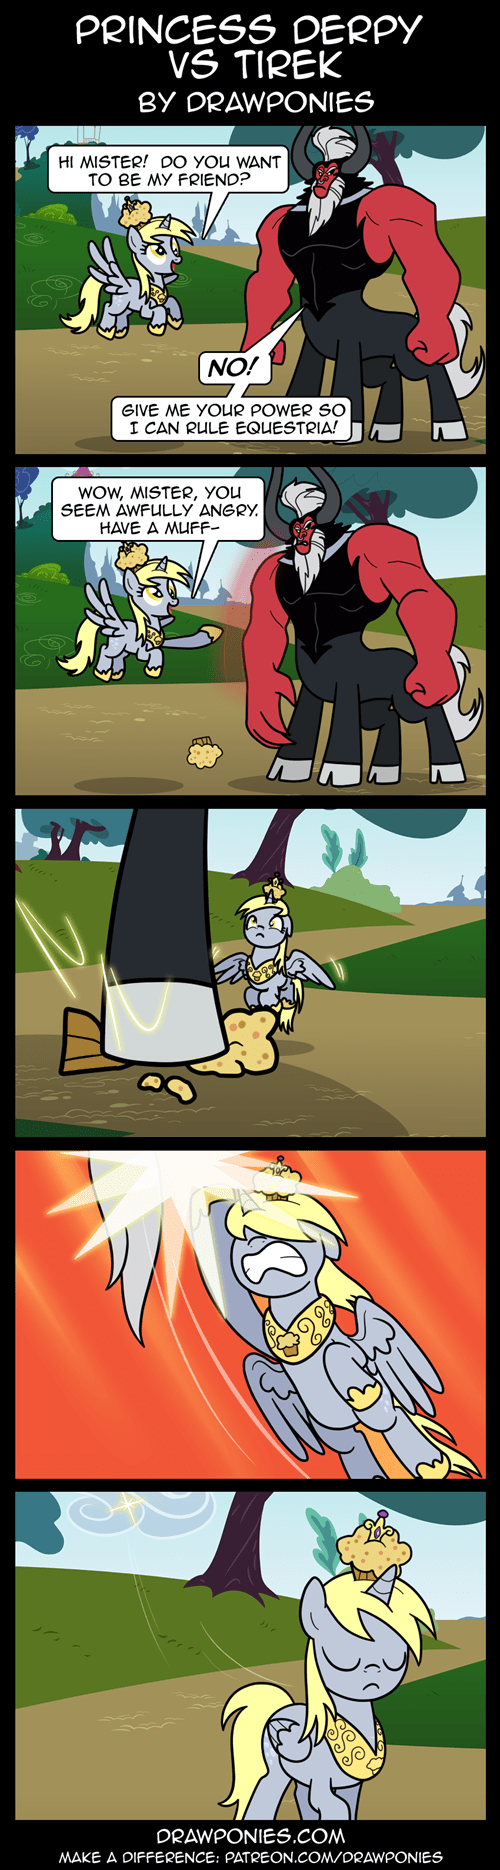 comics derpy hooves tirek - 8395775232